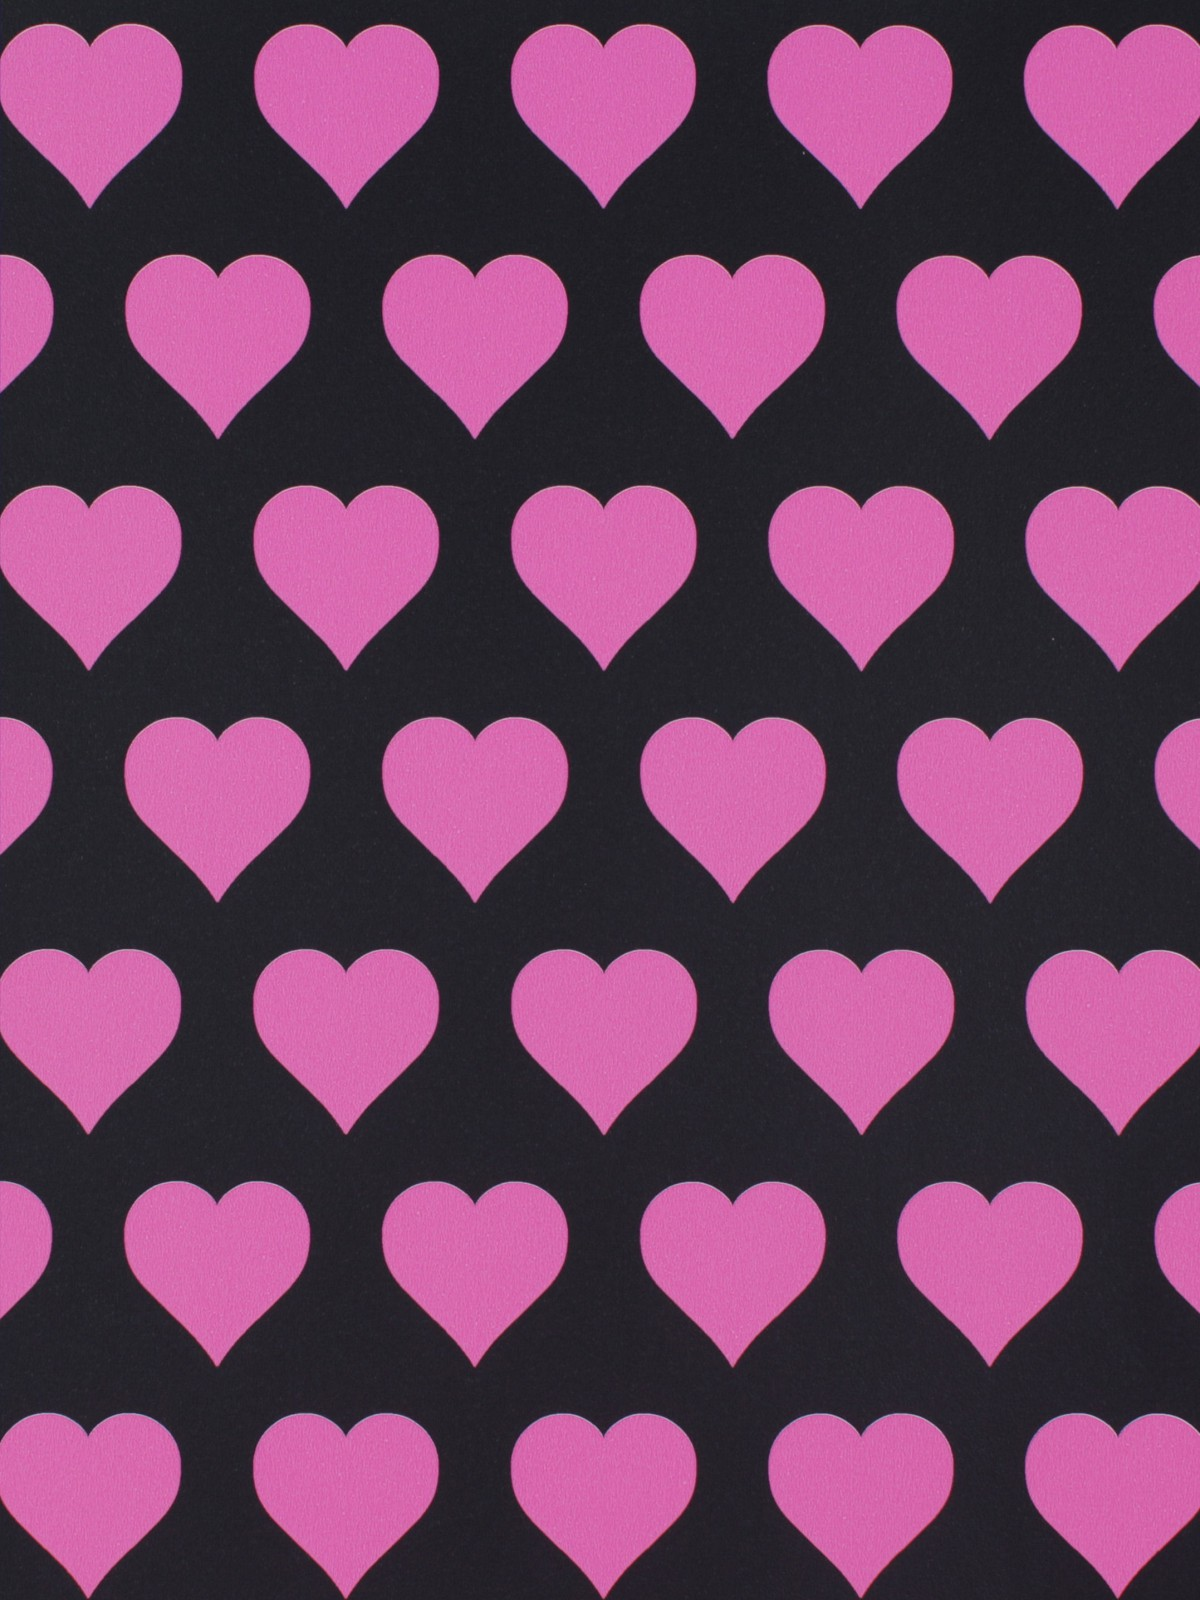 Free Newest Pink And Black Hearts Wallpaper